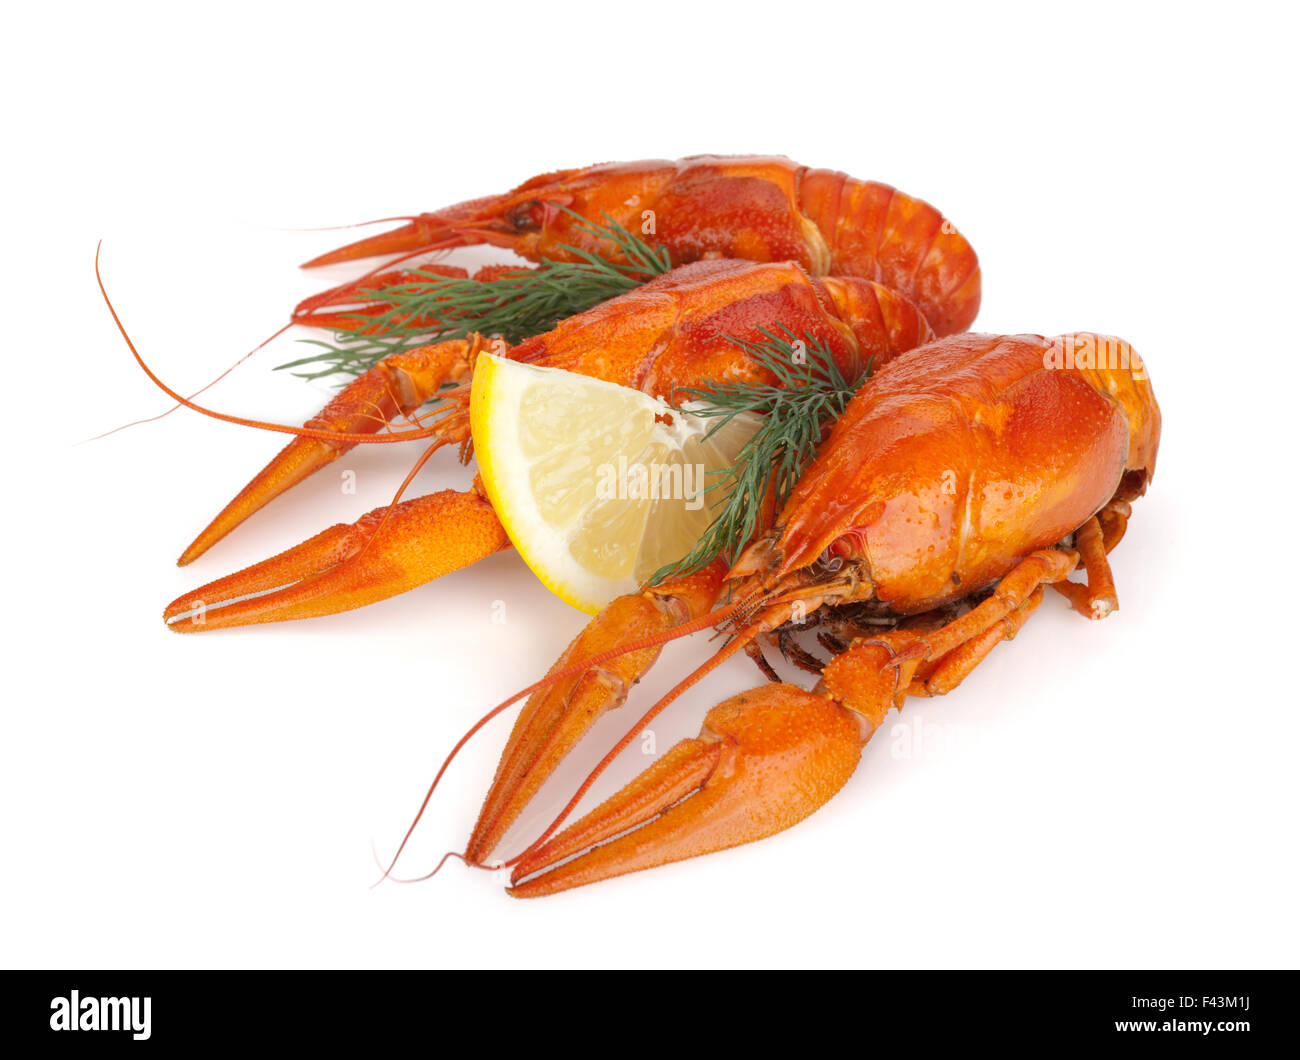 Boiled crawfishes with lemon slice and dill. Isolated on a white background - Stock Image